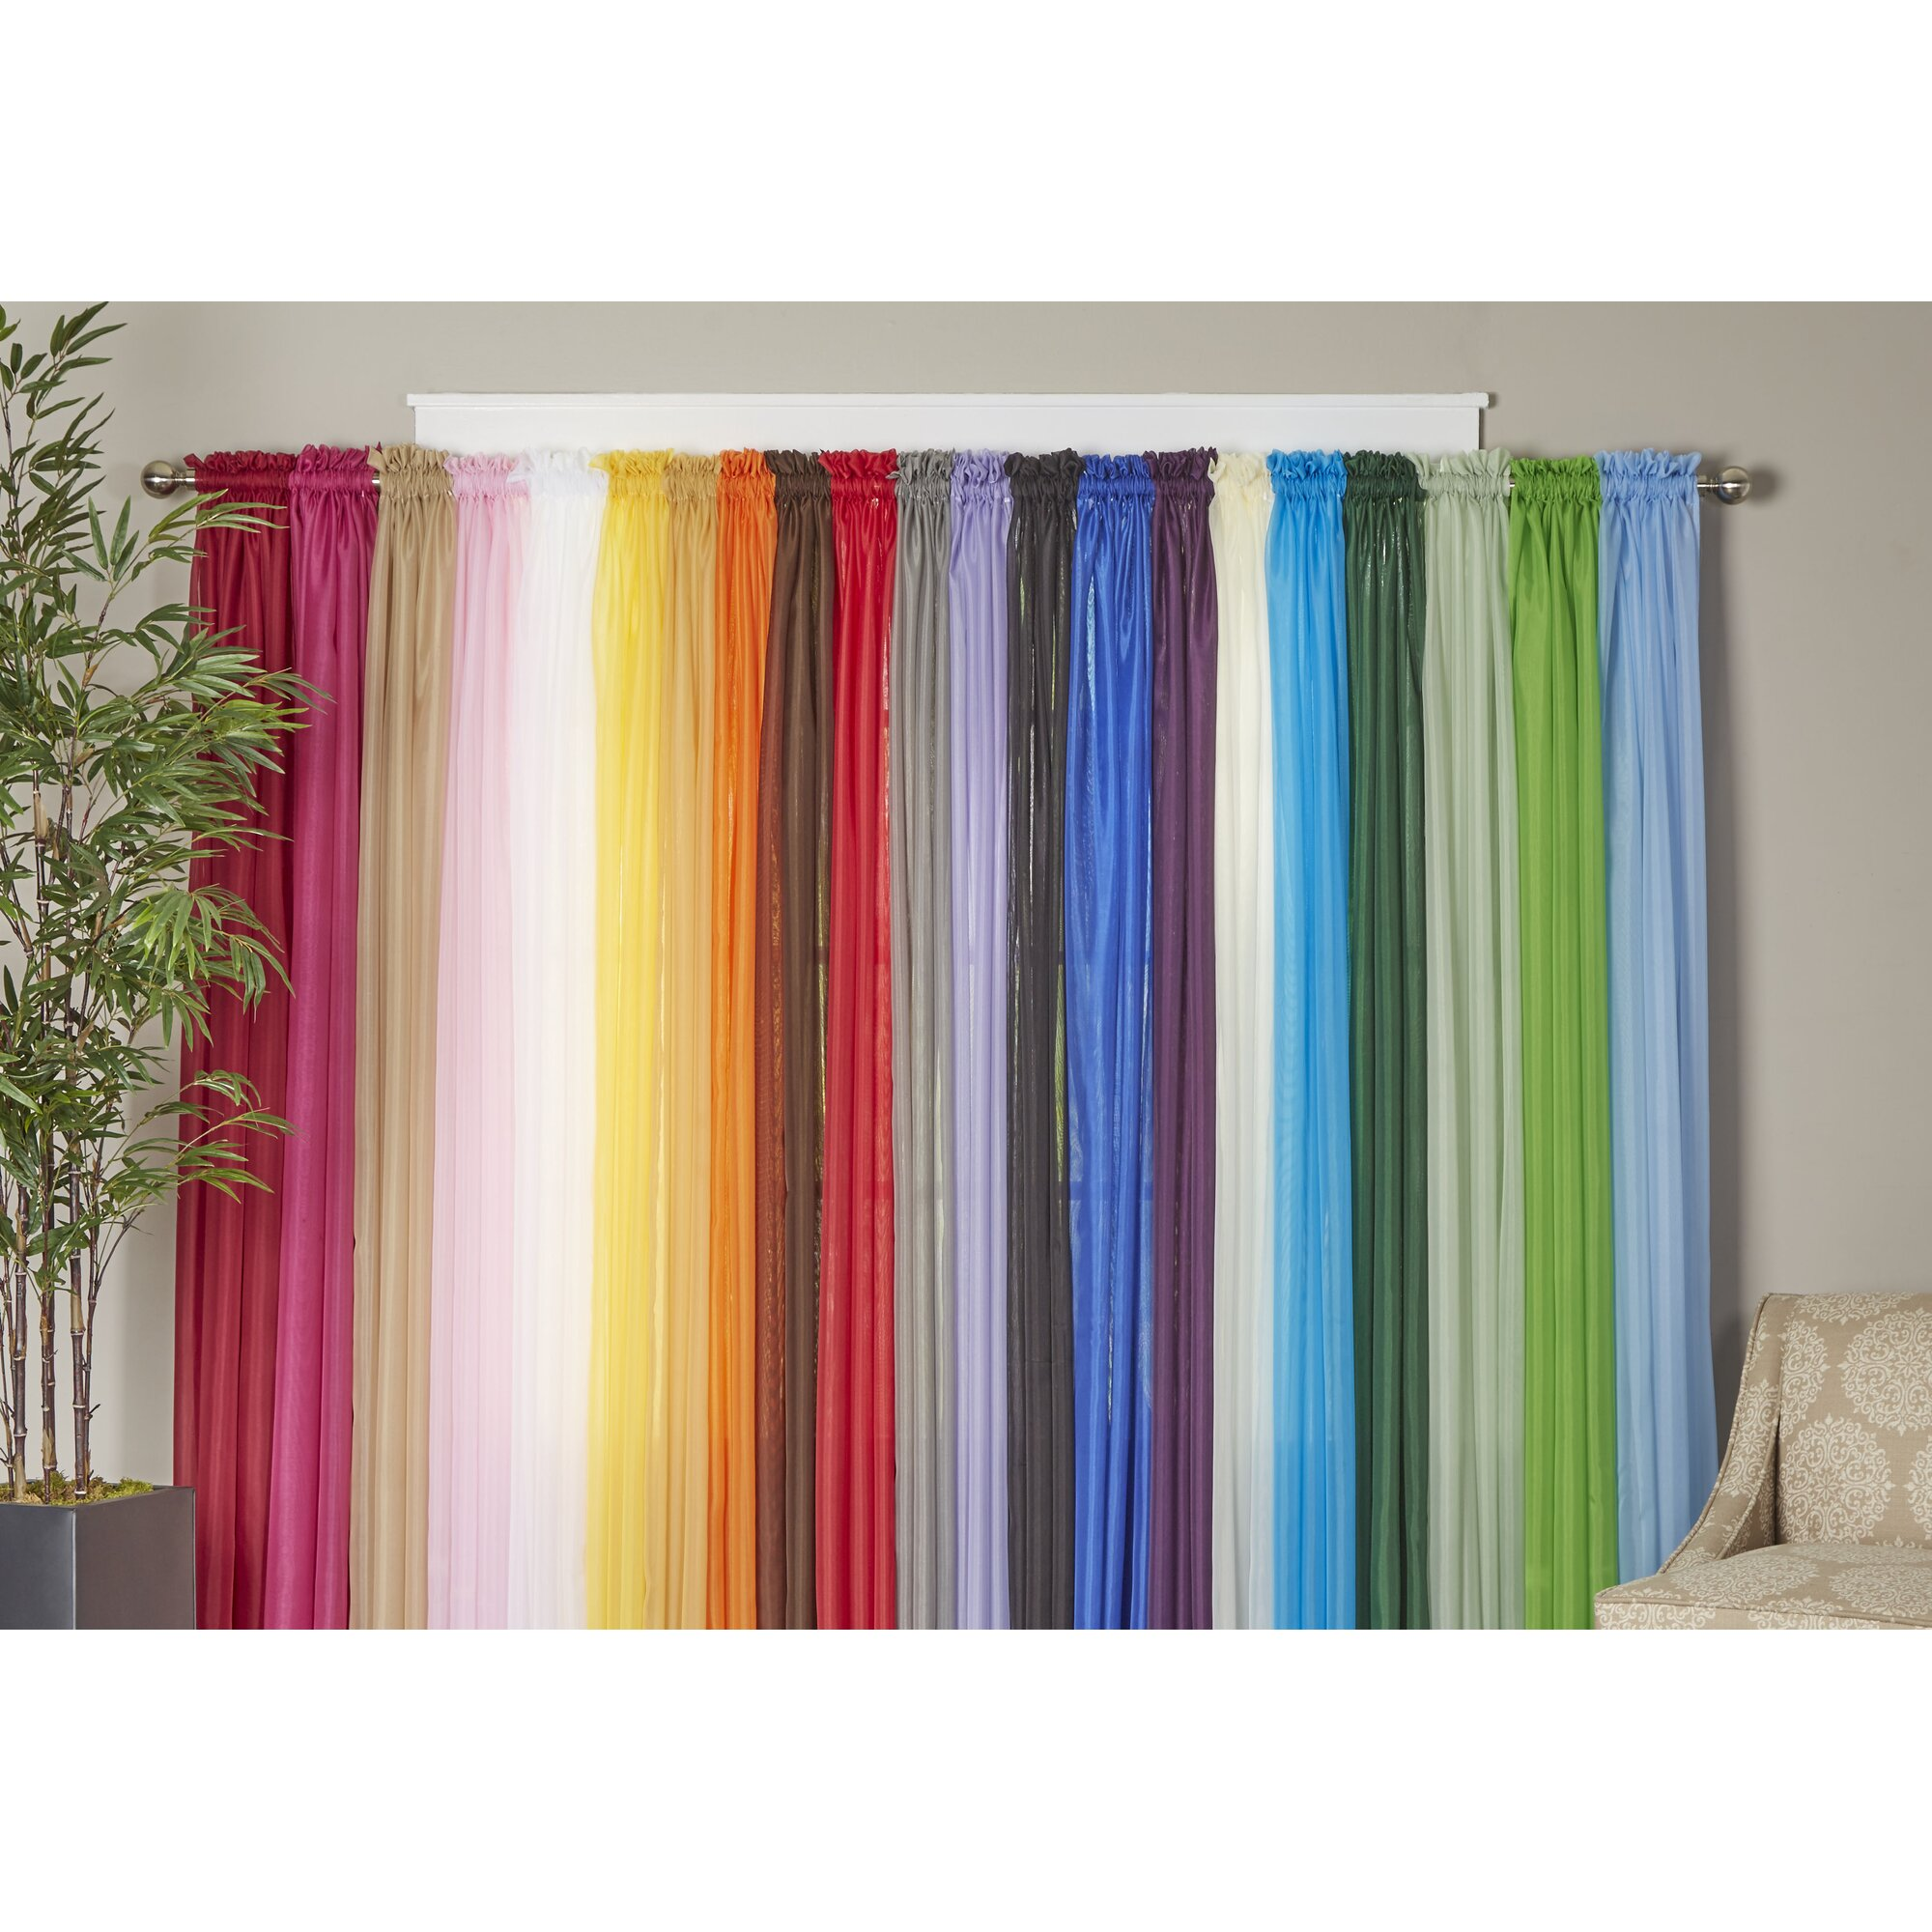 Wayfair Basics Wayfair Basics Solid Sheer Curtain Panels & Reviews | Wayfair.ca